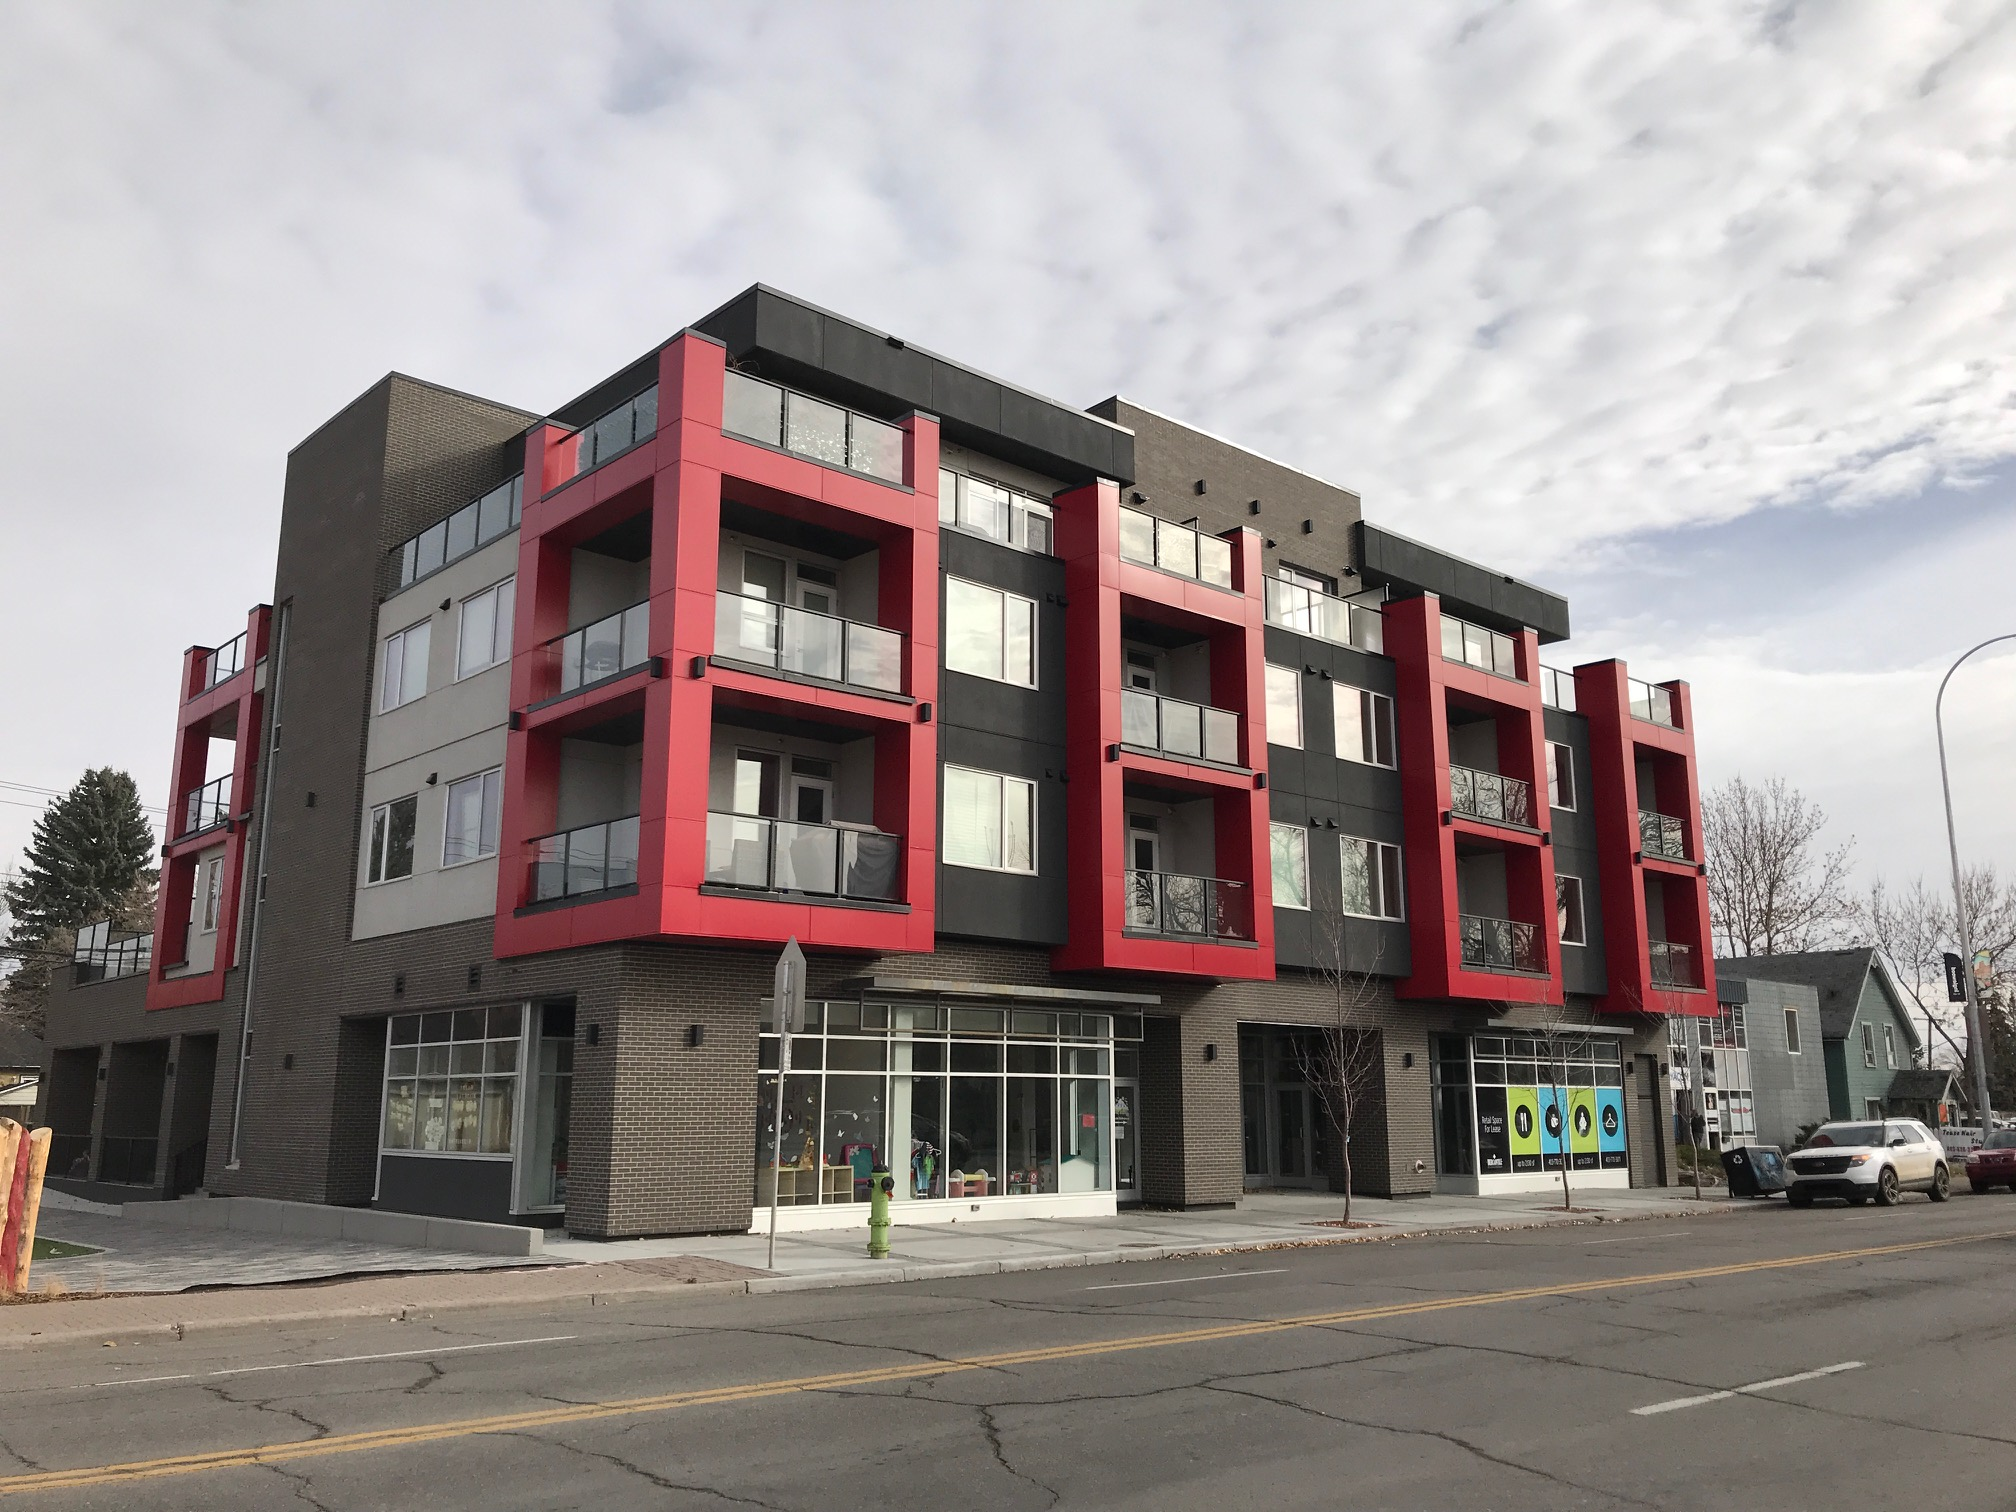 The I.D. Inglewood condo by Sarina Homes completed in 2016 at the east end of 9th Avenue SE, features three-storey high red balcony boxes that recall the red ladder of the Orange Lofts and perhaps the Alberta Children's Hospital windows.